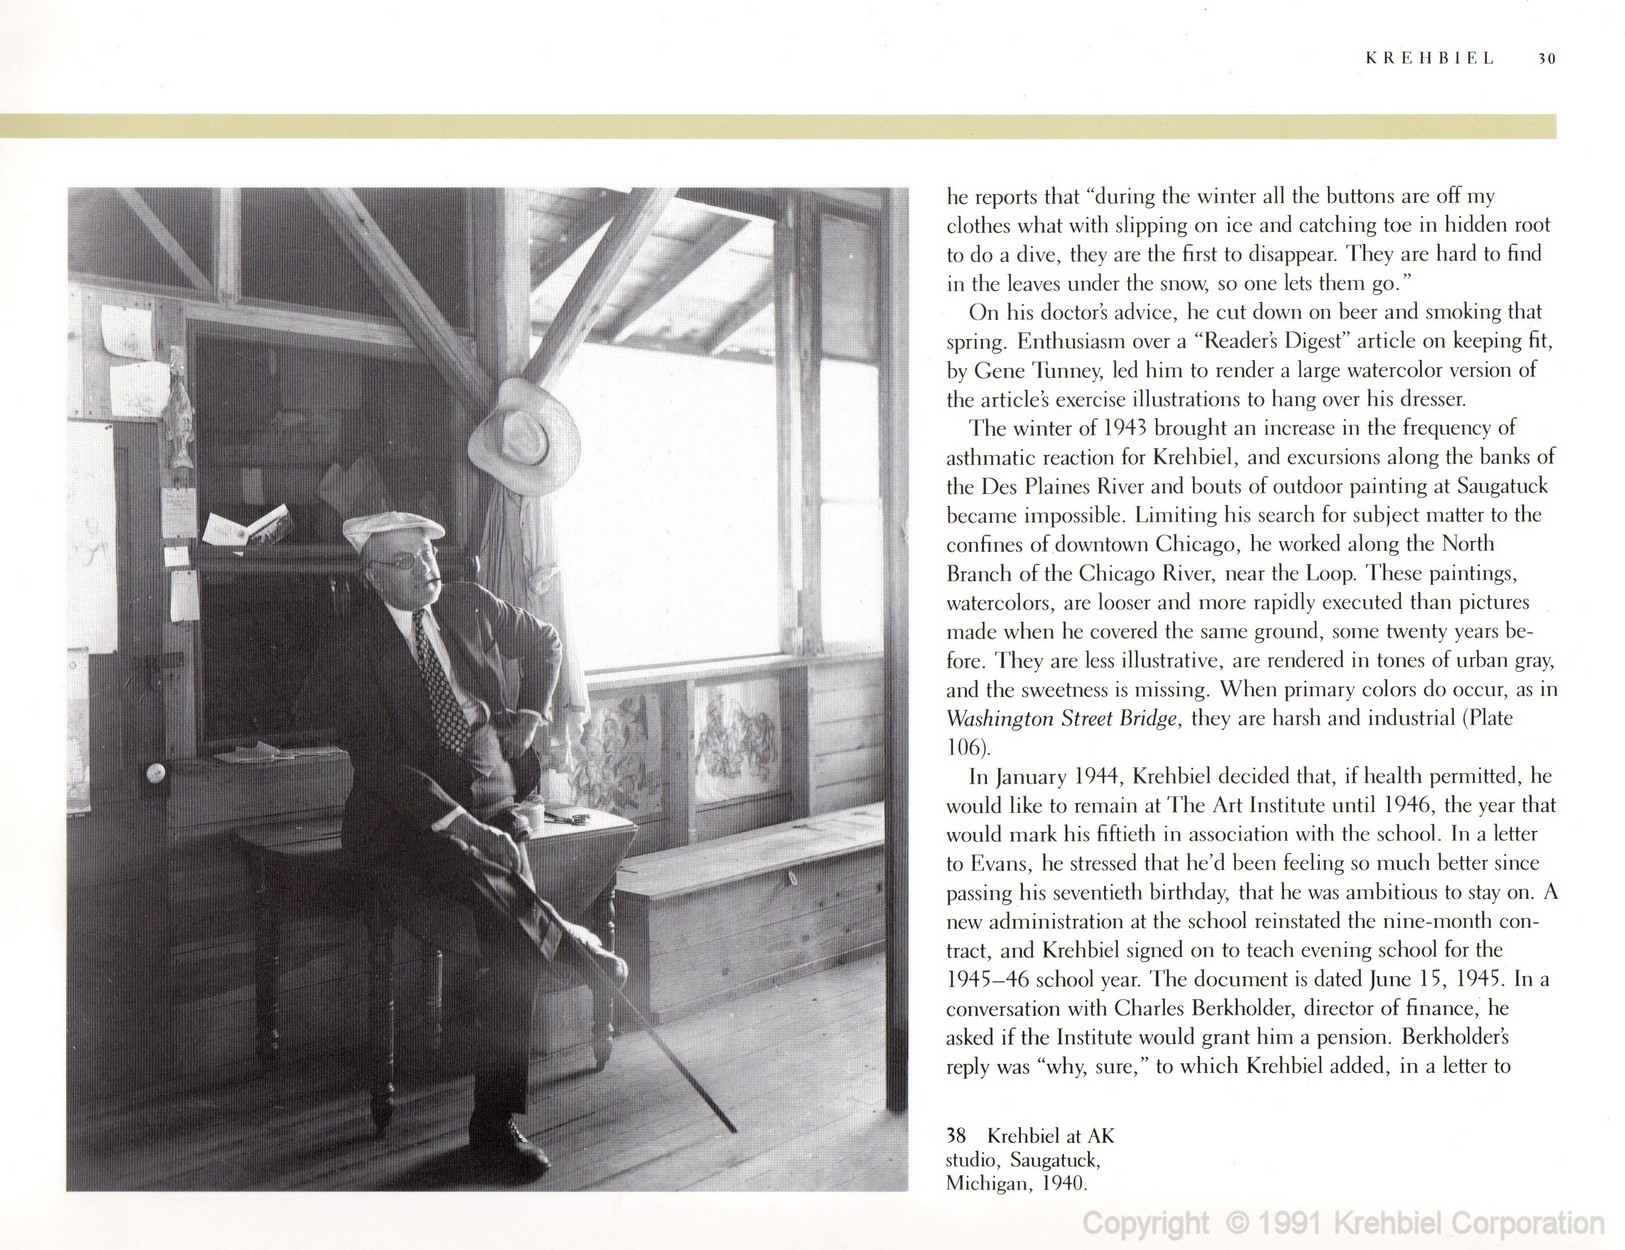 Page 30 of Krehbiel - Life and Works of an American Artist